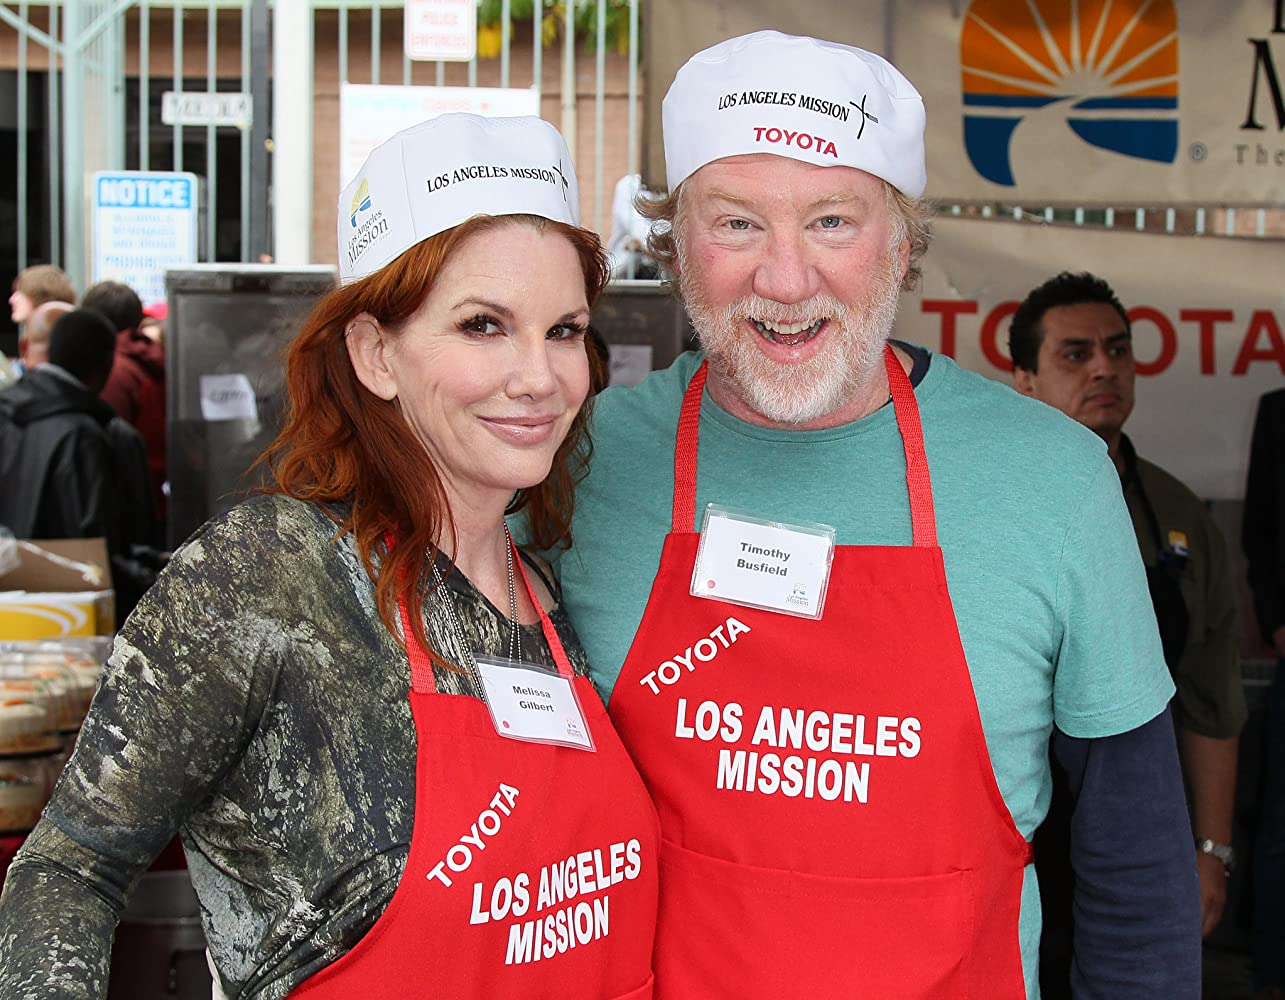 timothy busfield height